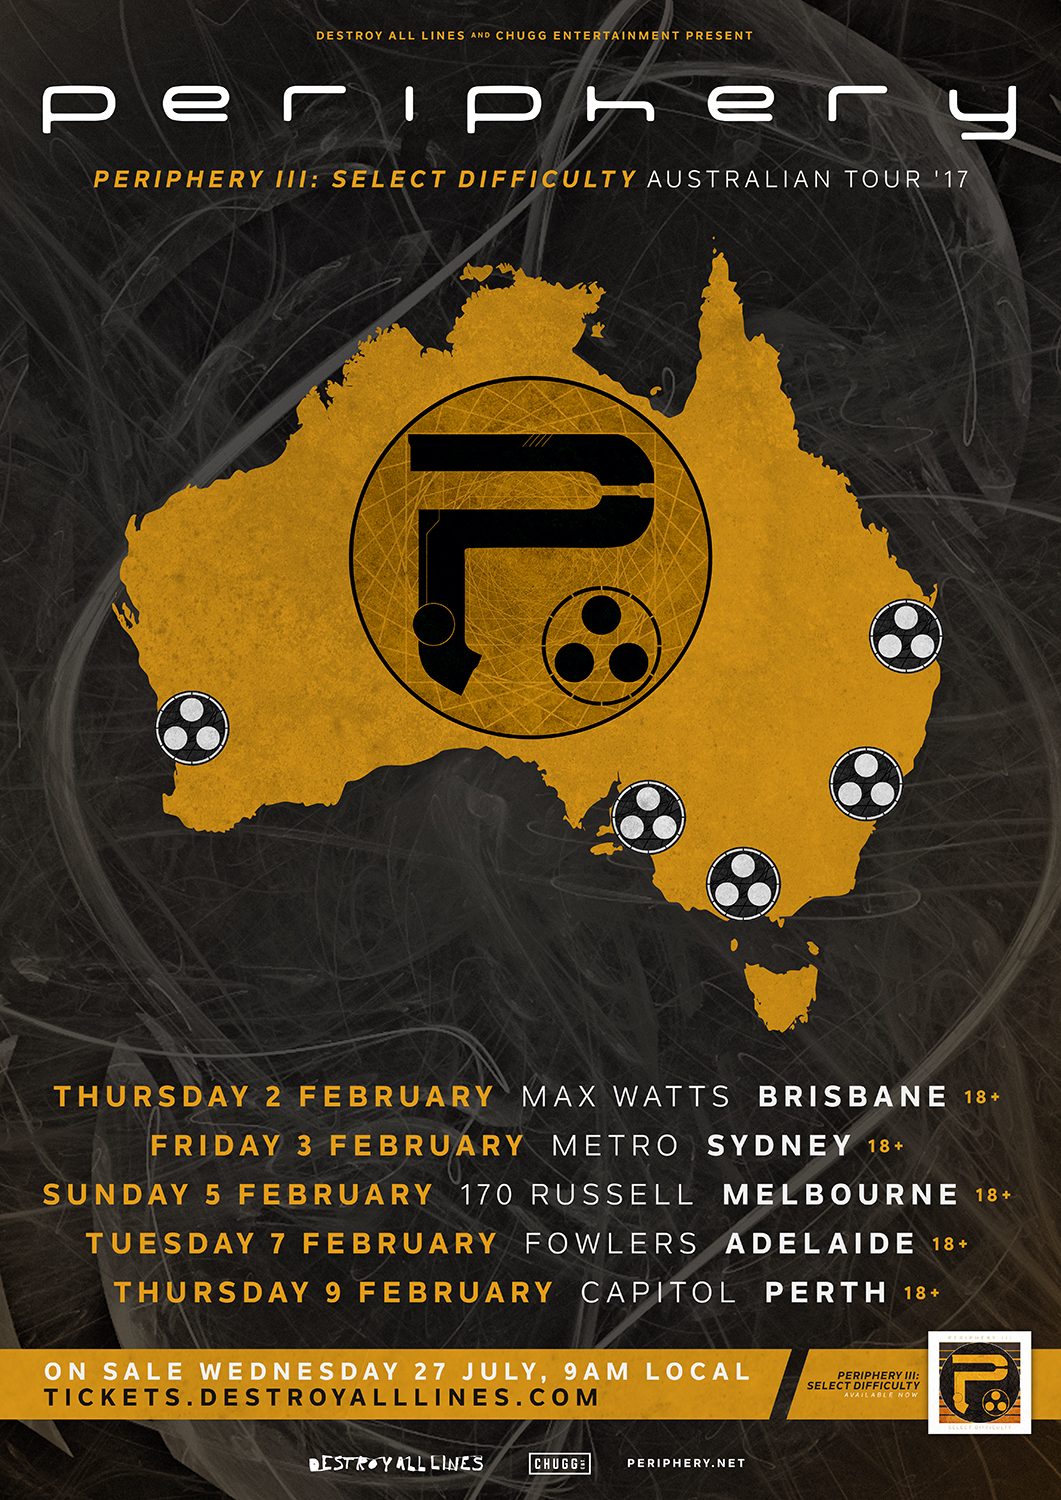 Periphery Announce Periphery III Select Difficulty Australian Tour  Music Feeds